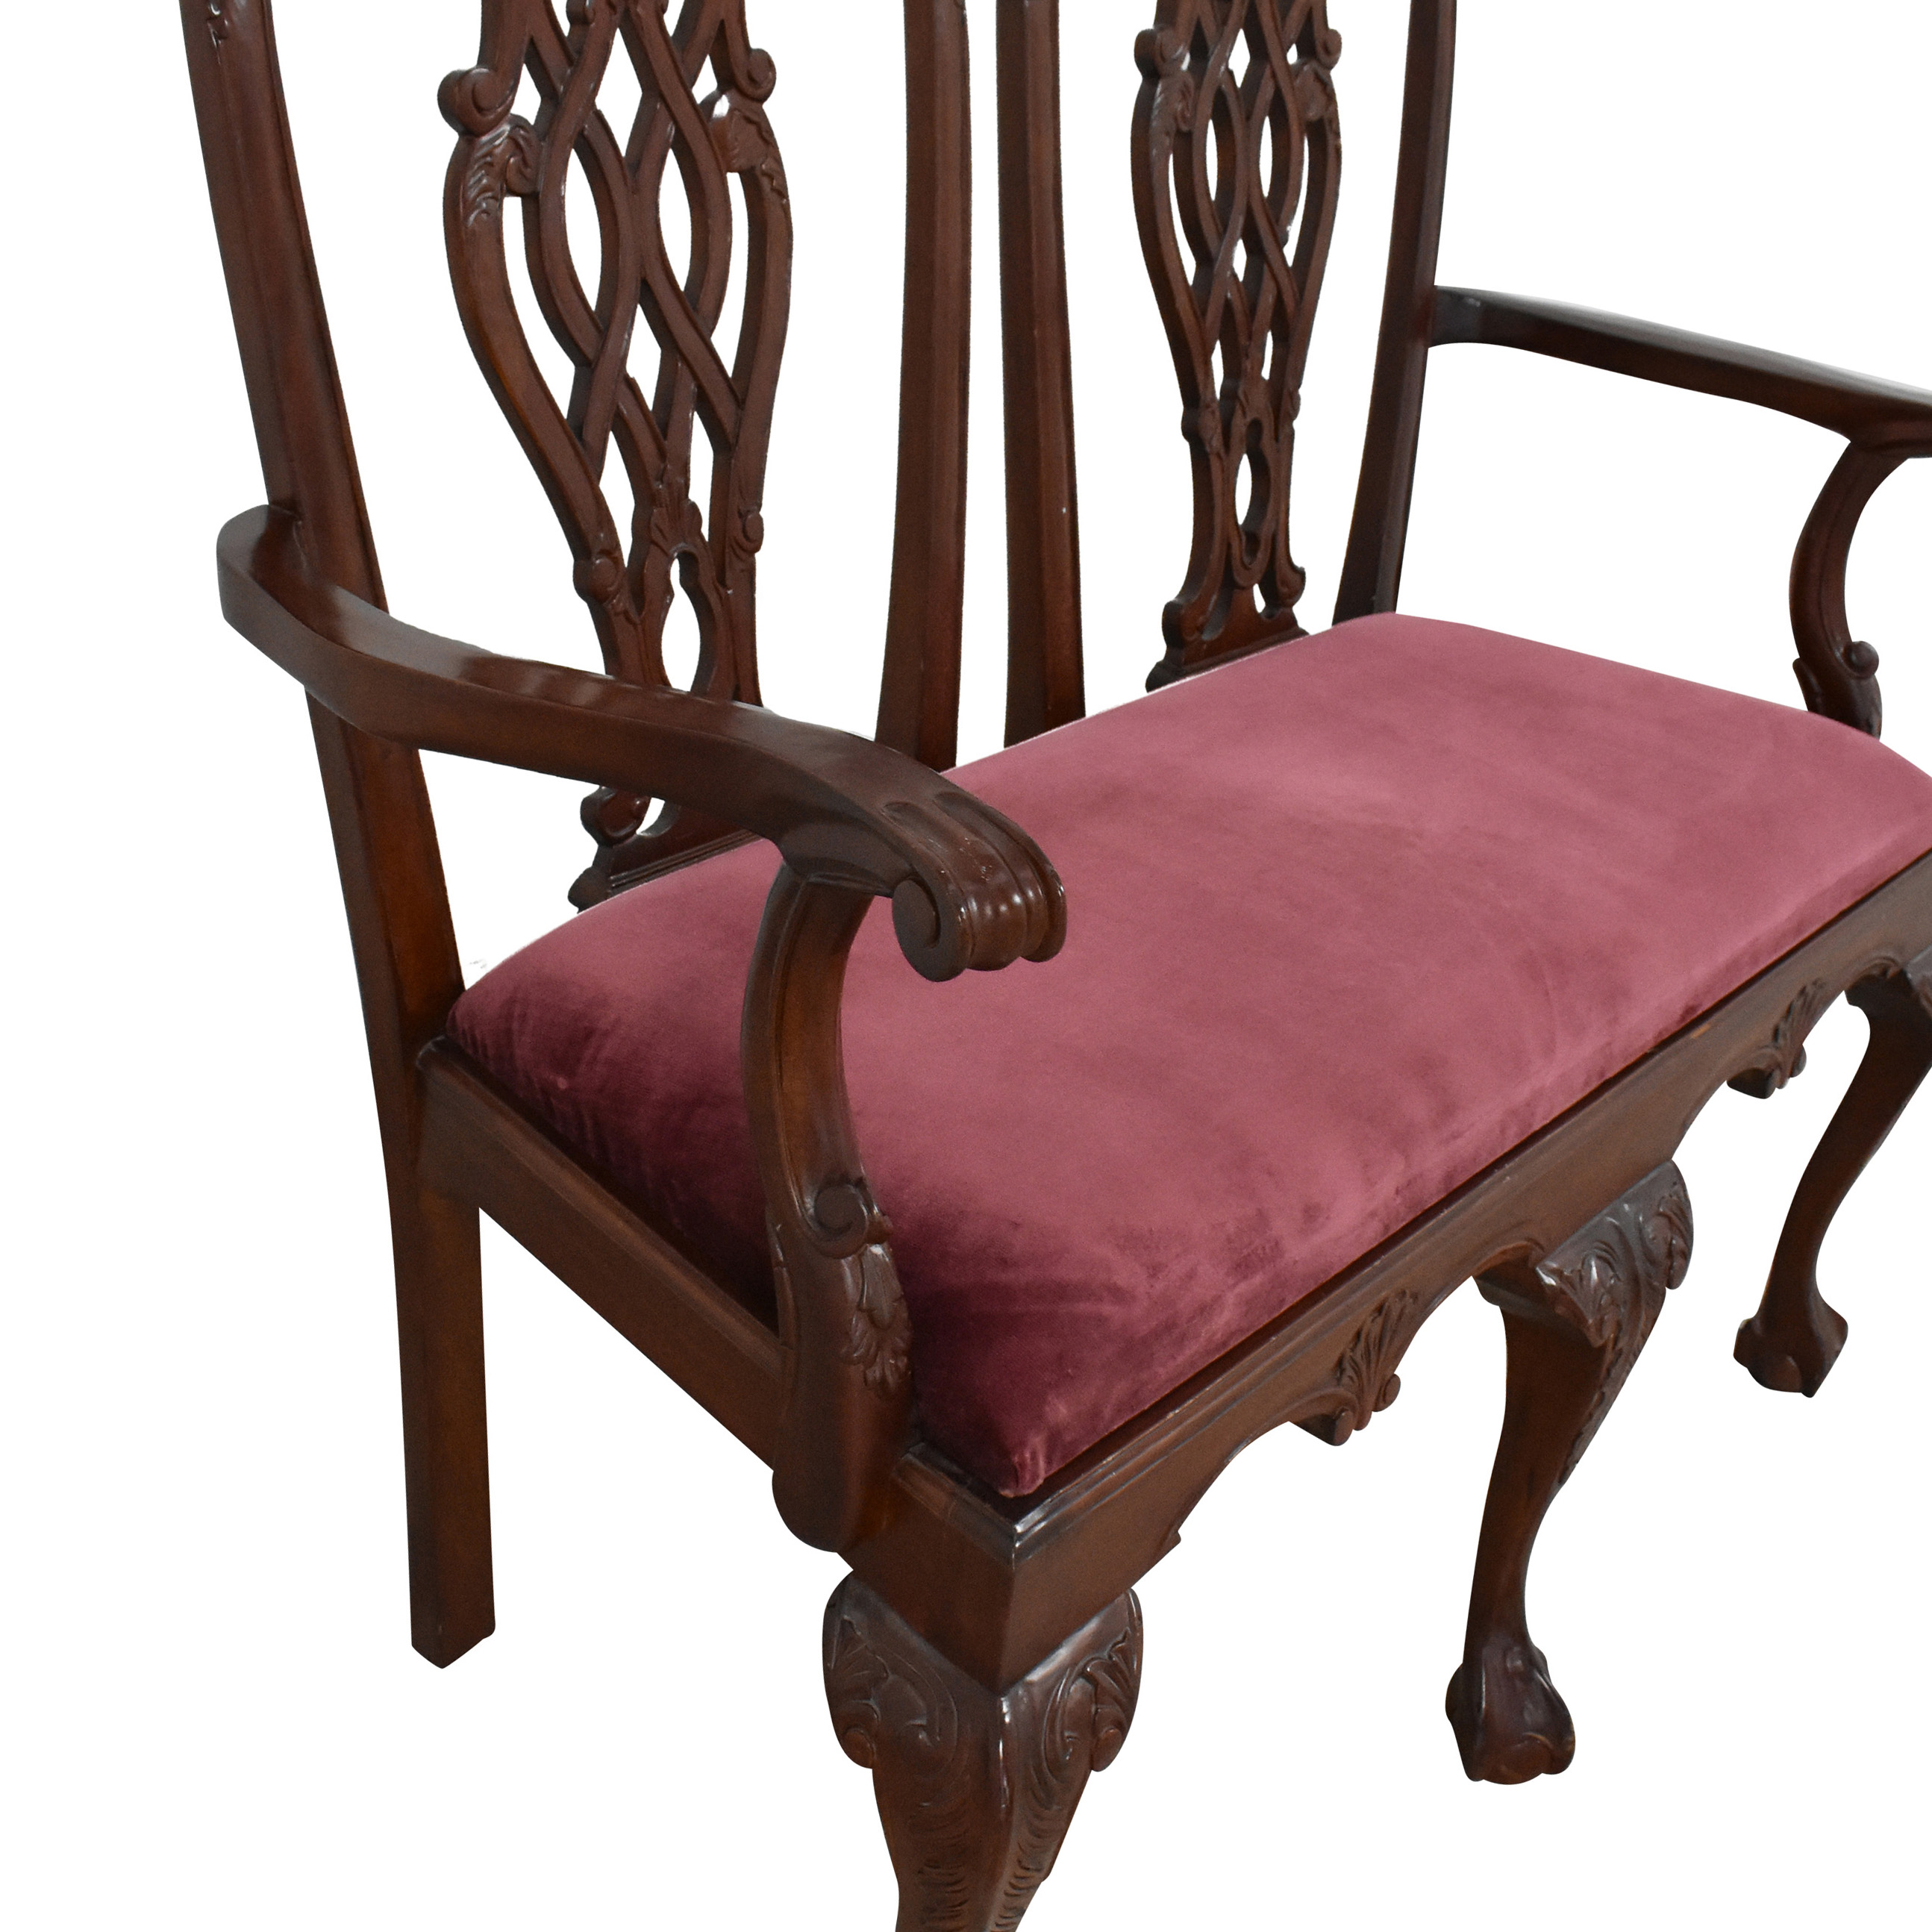 Chippendale Ball and Claw Settee used